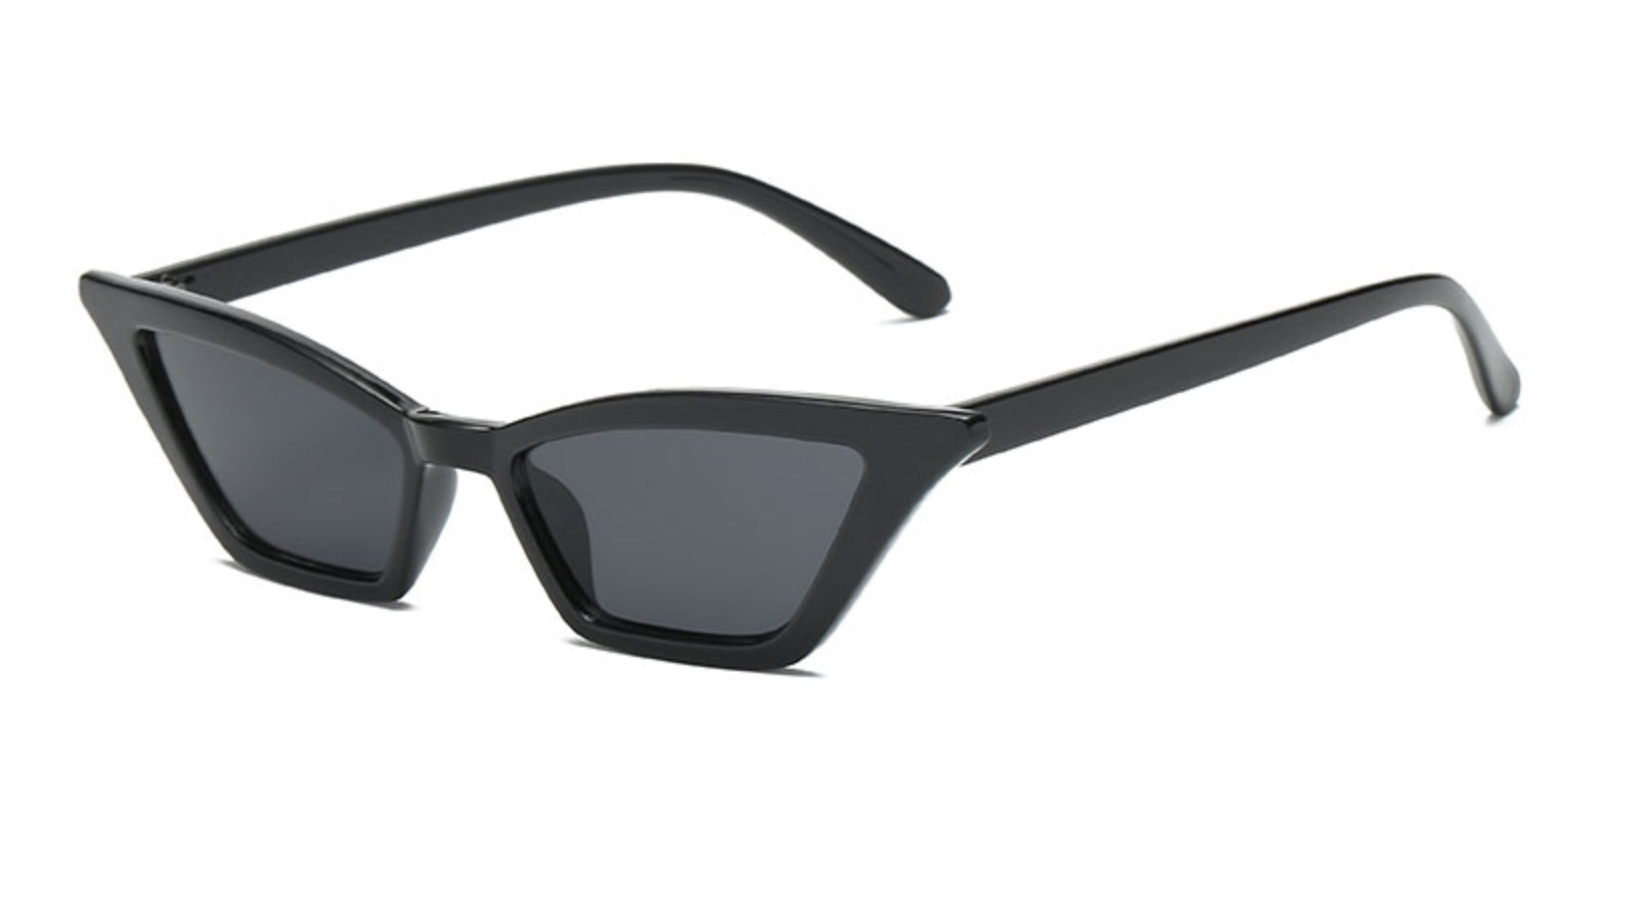 Andreas Cat-eye SunglassesFortistFortist